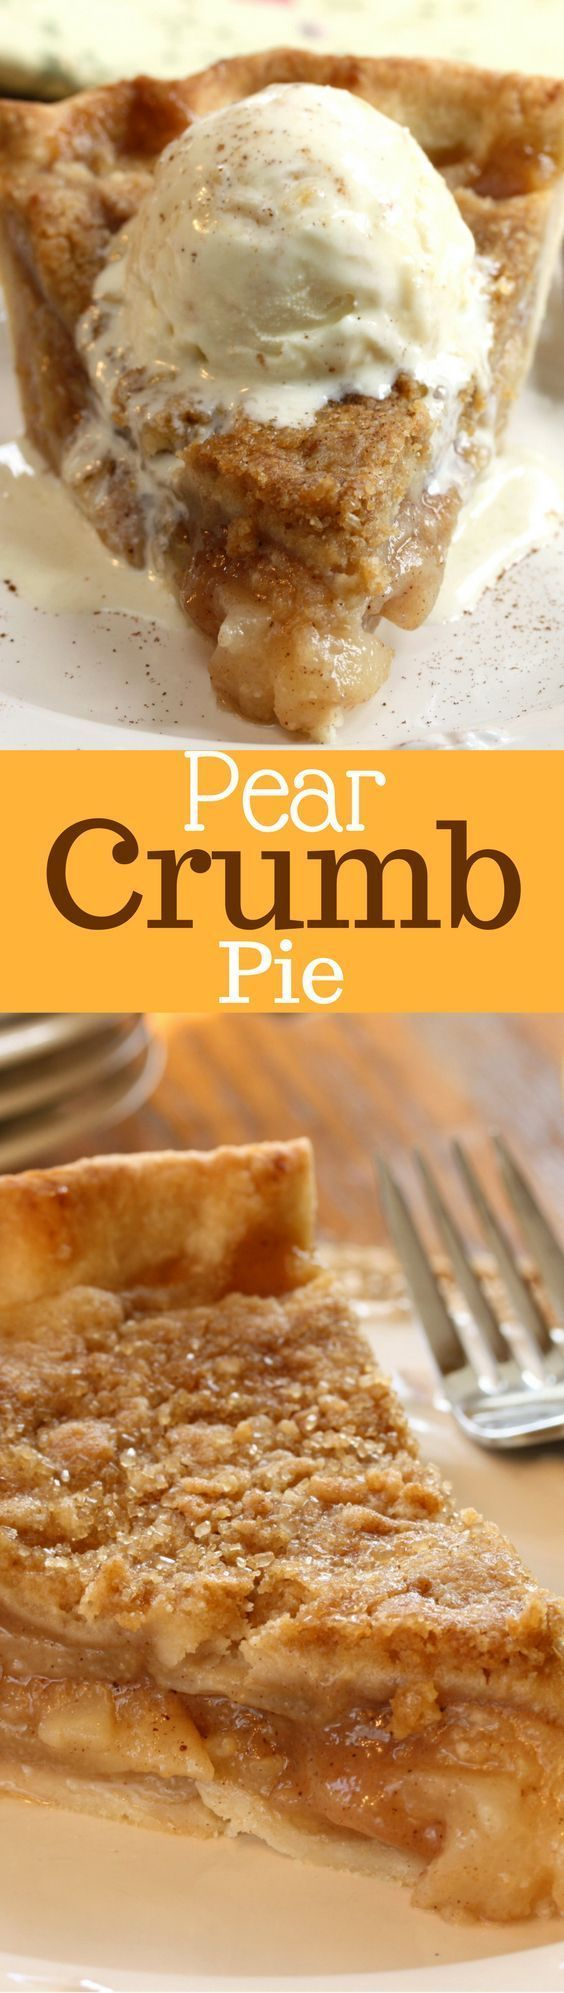 Pear Crumb Pie - juicy pears topped with a sweet crumb mixture wrapped in a flaky crust - fall fruit at it's best!  http://www.savingdessert.com